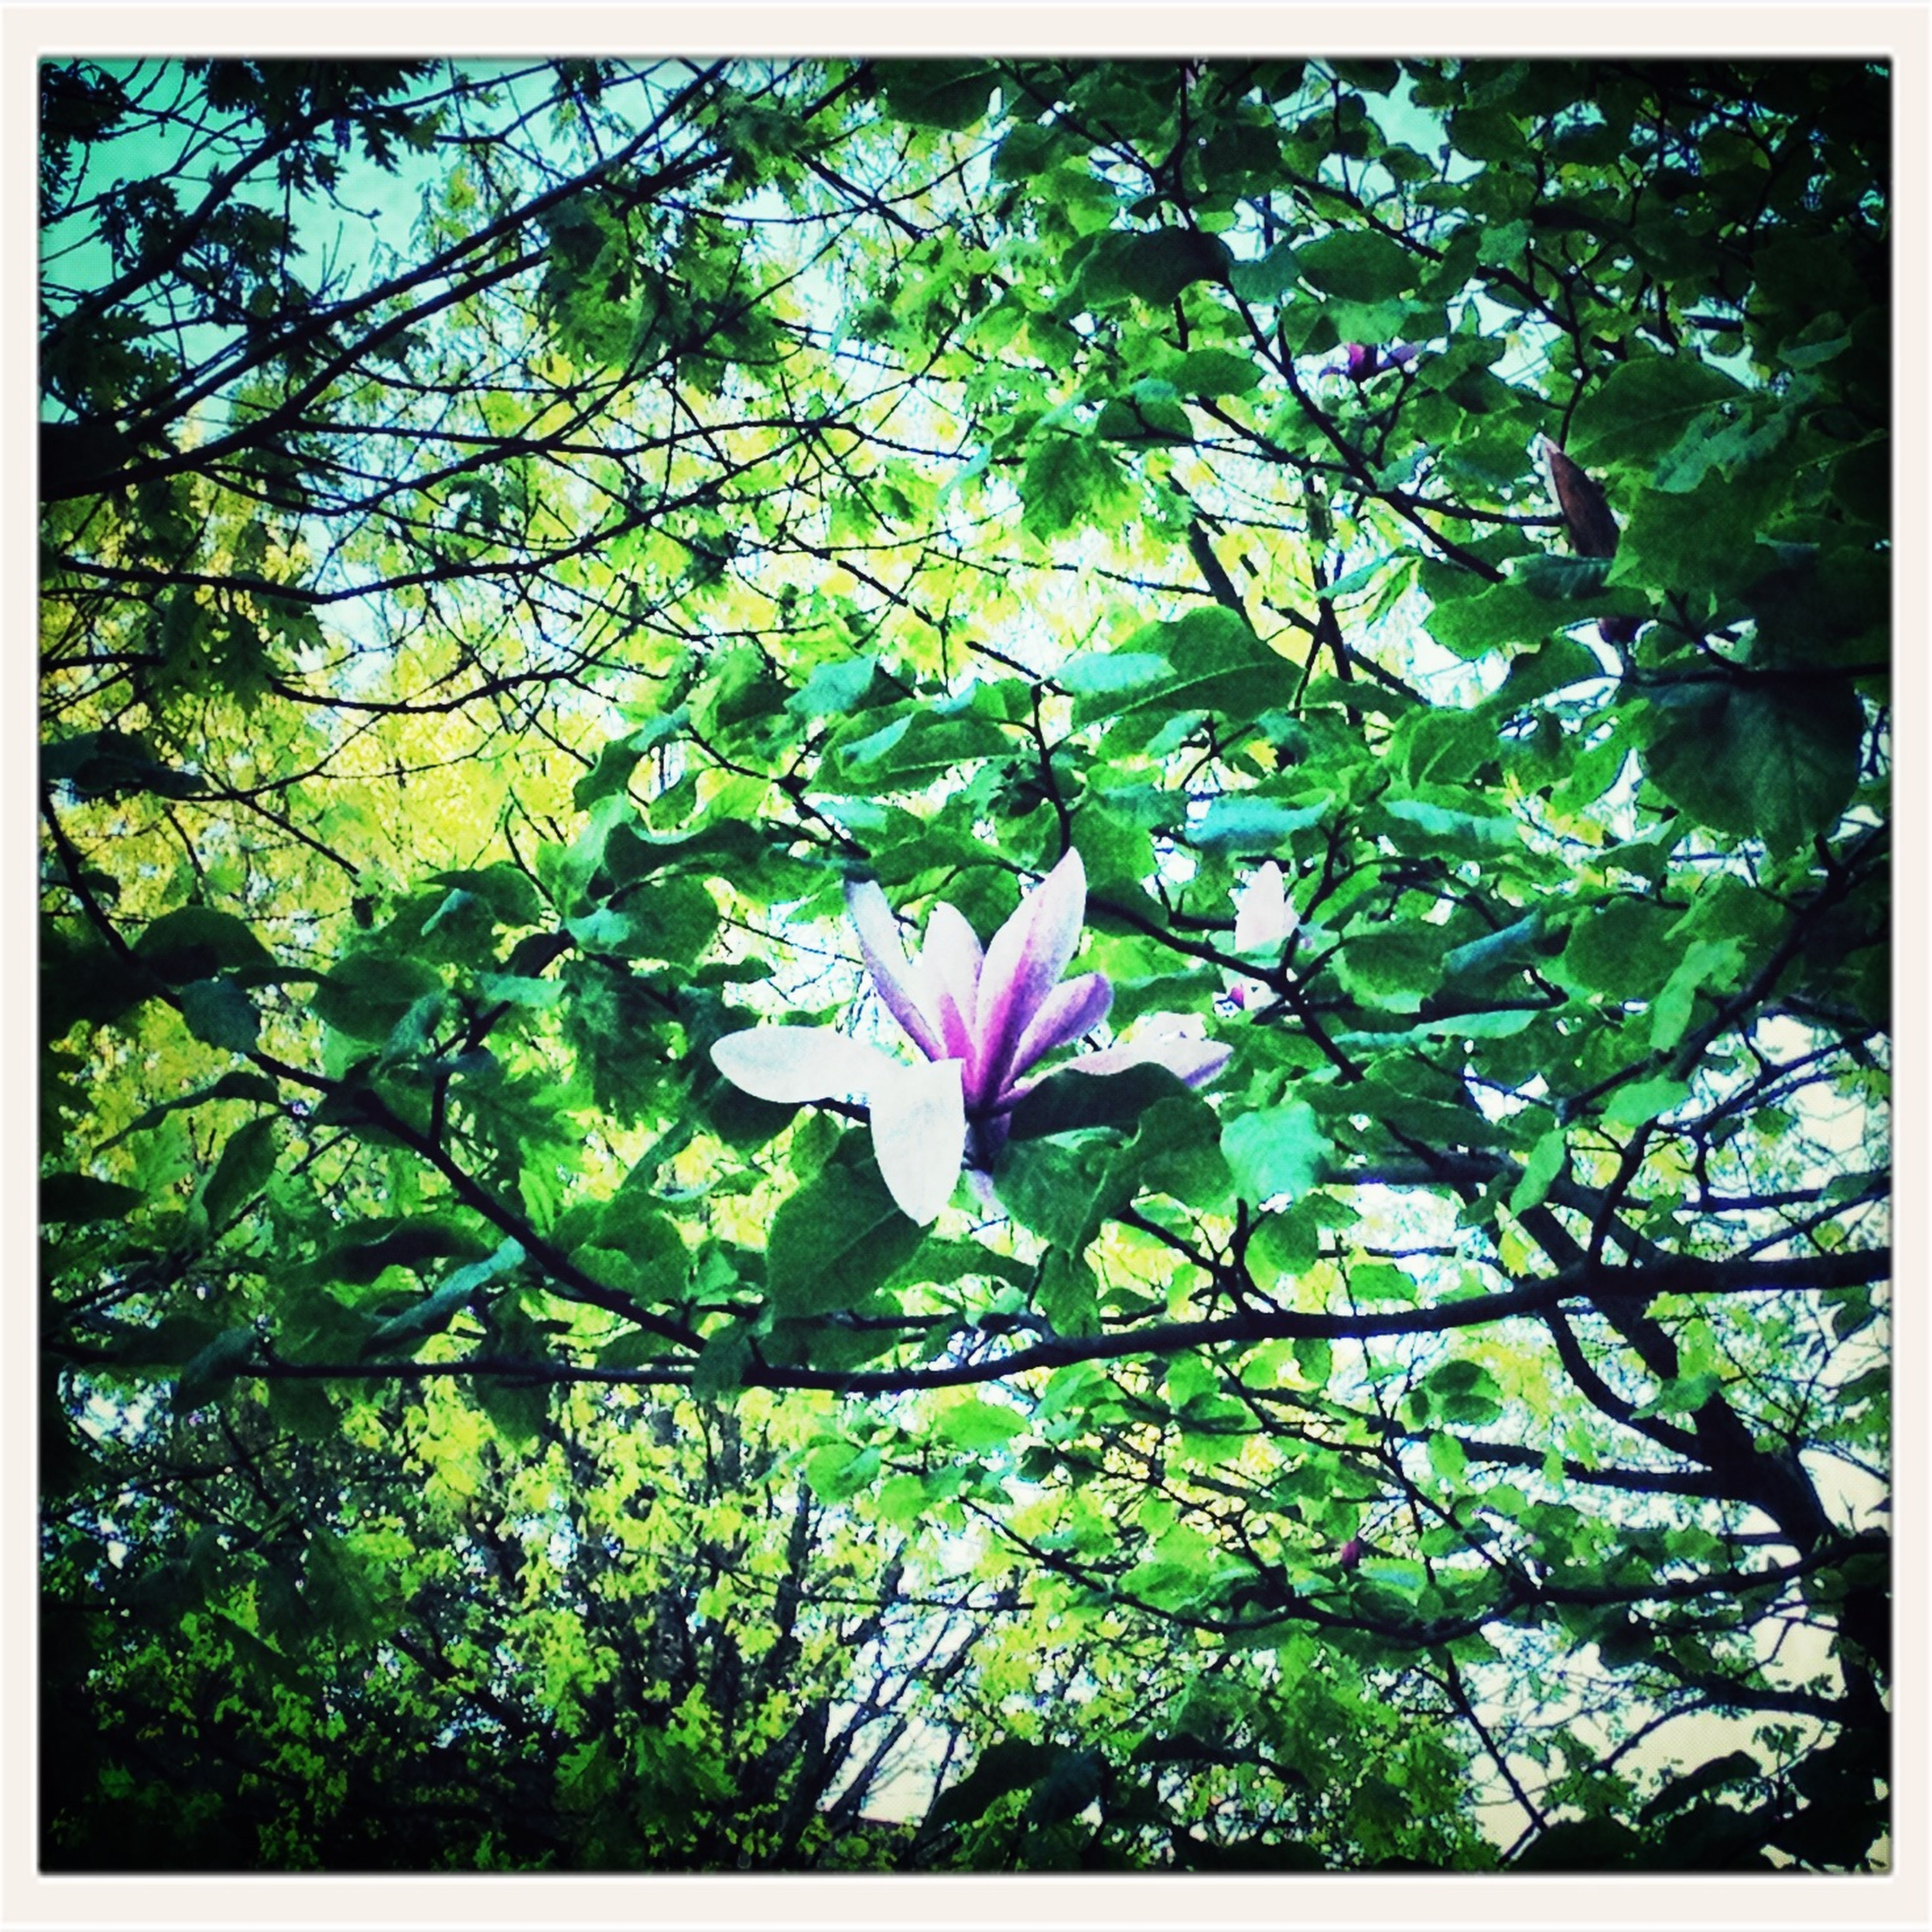 flower, growth, transfer print, freshness, branch, tree, beauty in nature, leaf, nature, auto post production filter, fragility, green color, blossom, petal, pink color, low angle view, blooming, day, outdoors, plant